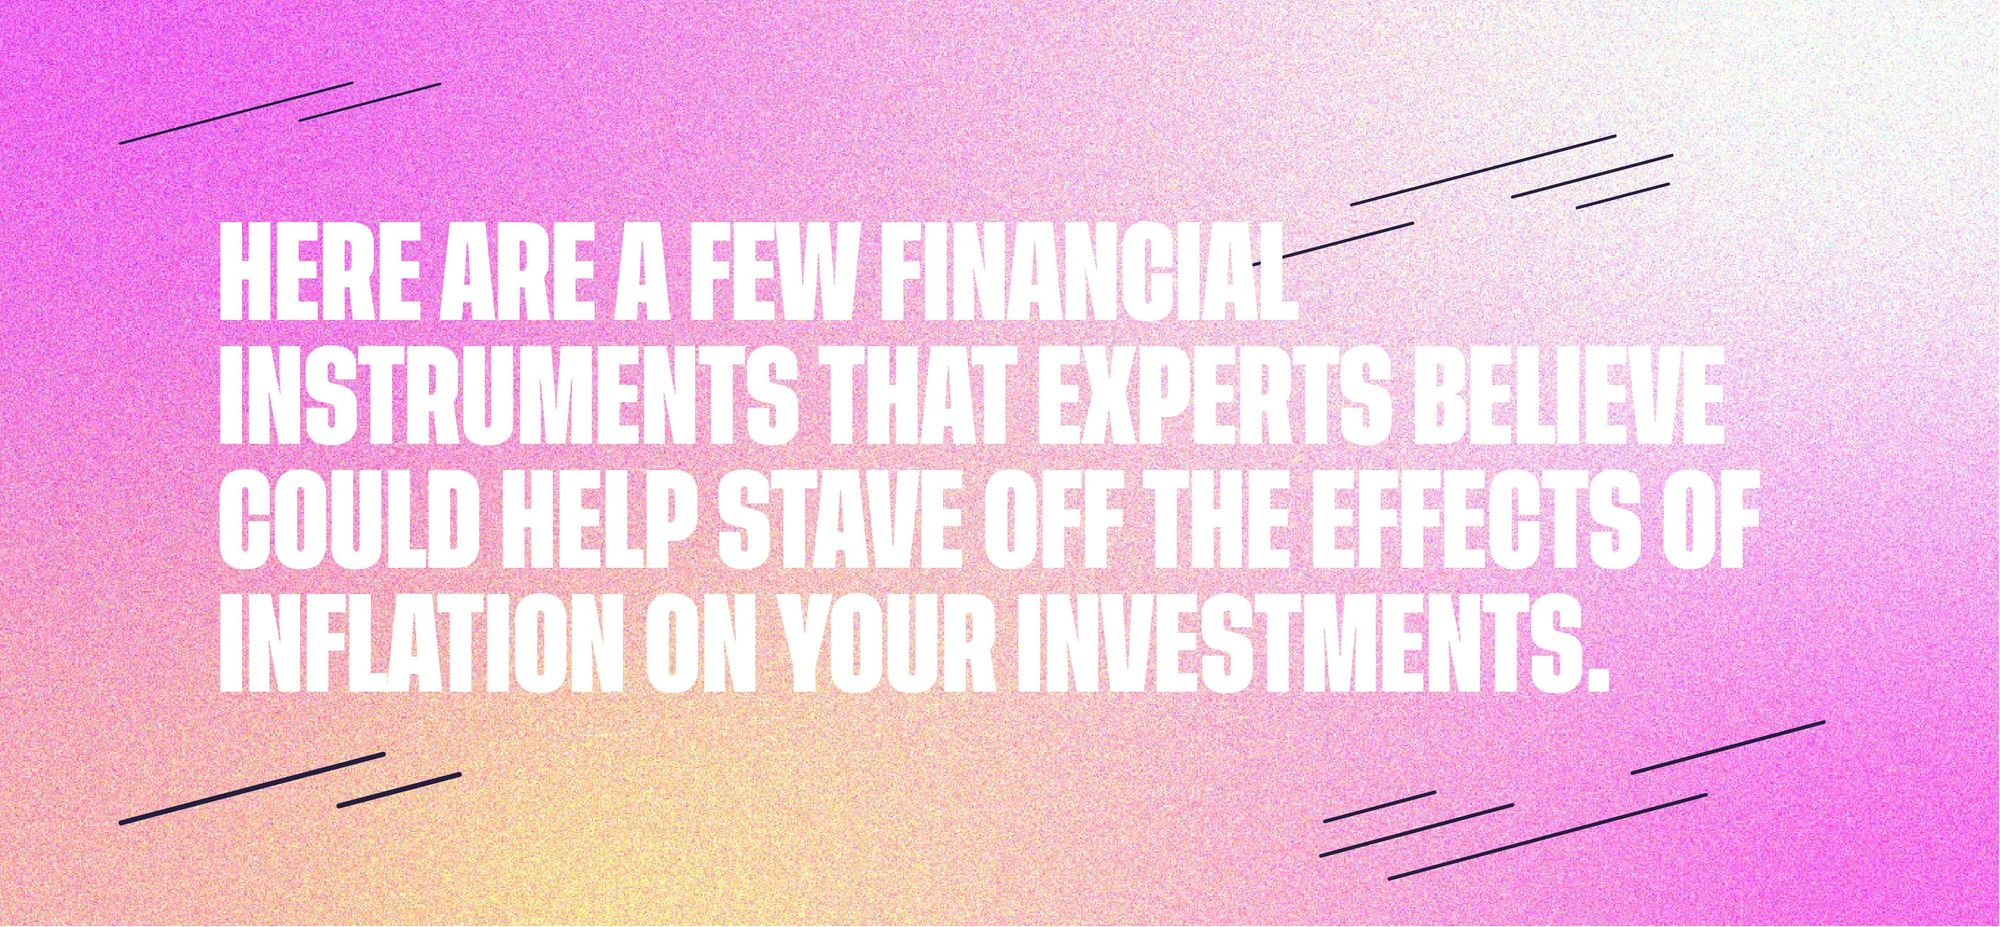 Here are a few financial instruments that experts believe could help stave off the effects of inflation on your investments